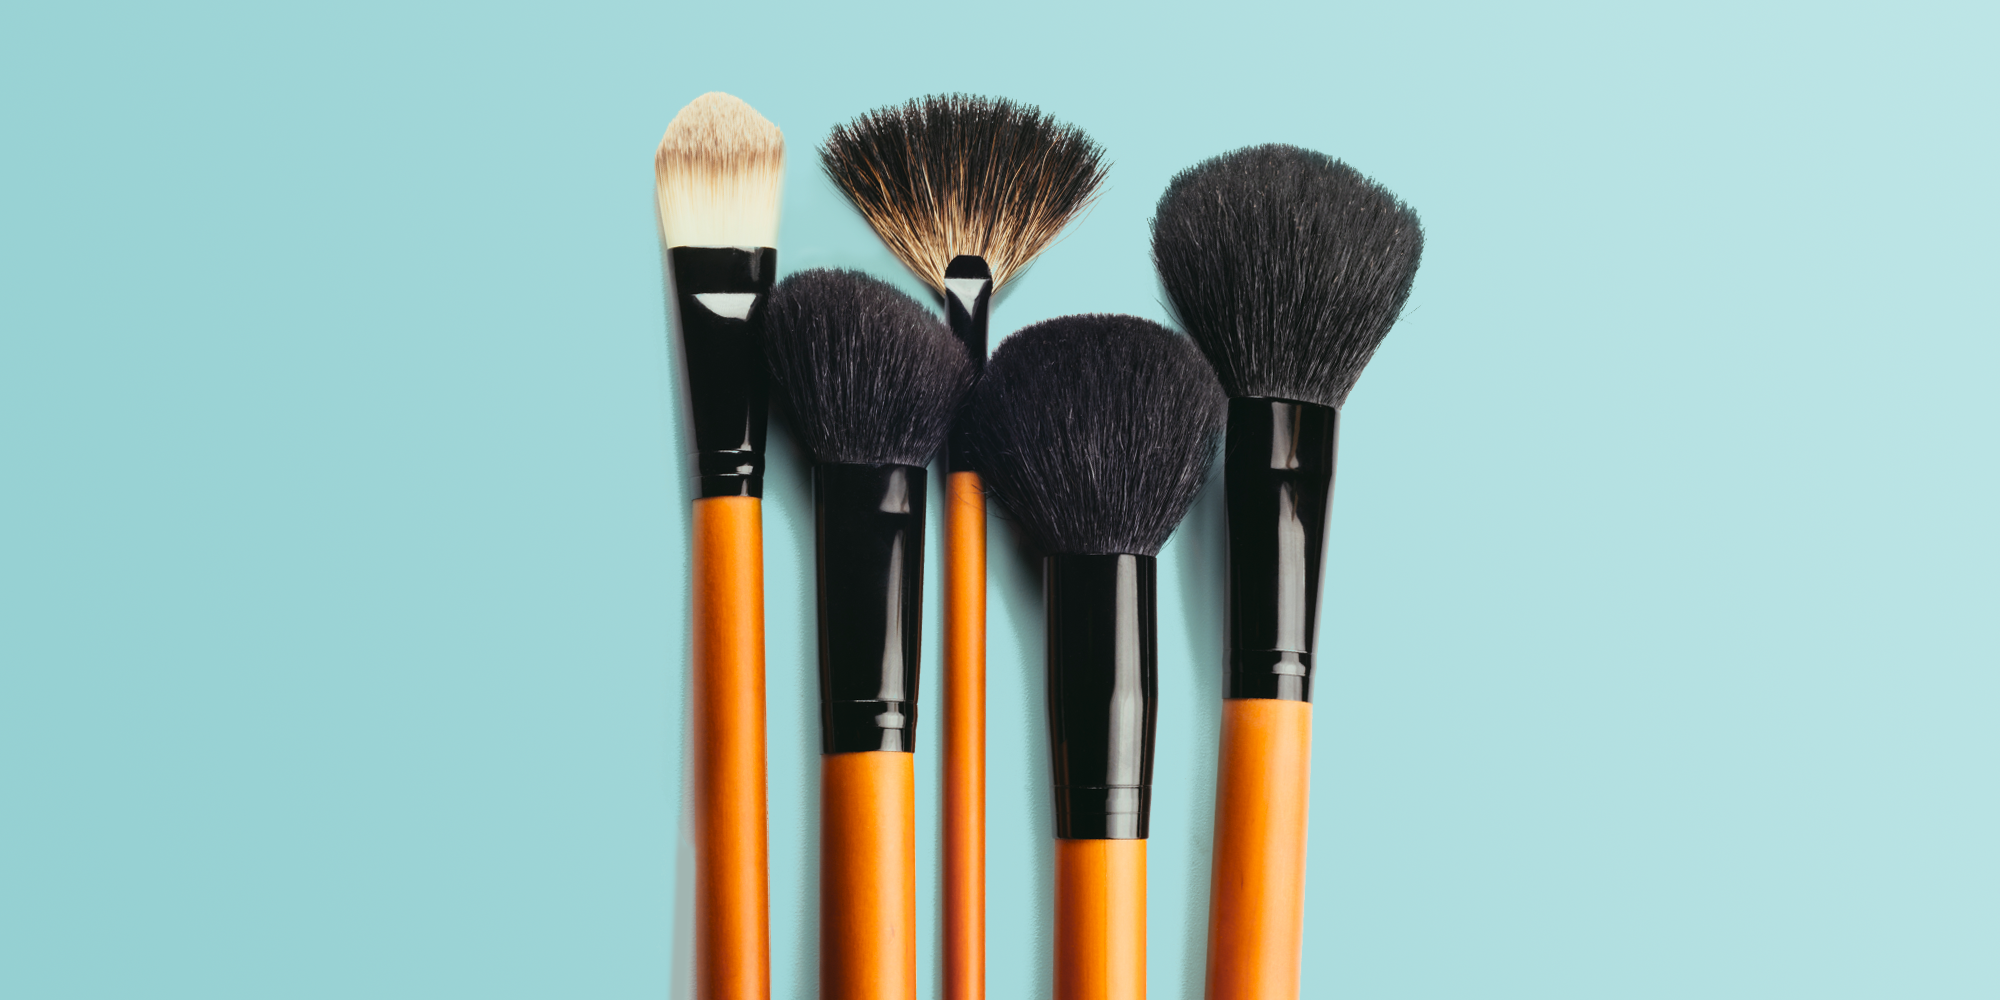 The 7 Best Makeup Brush Sets for Flawless Application